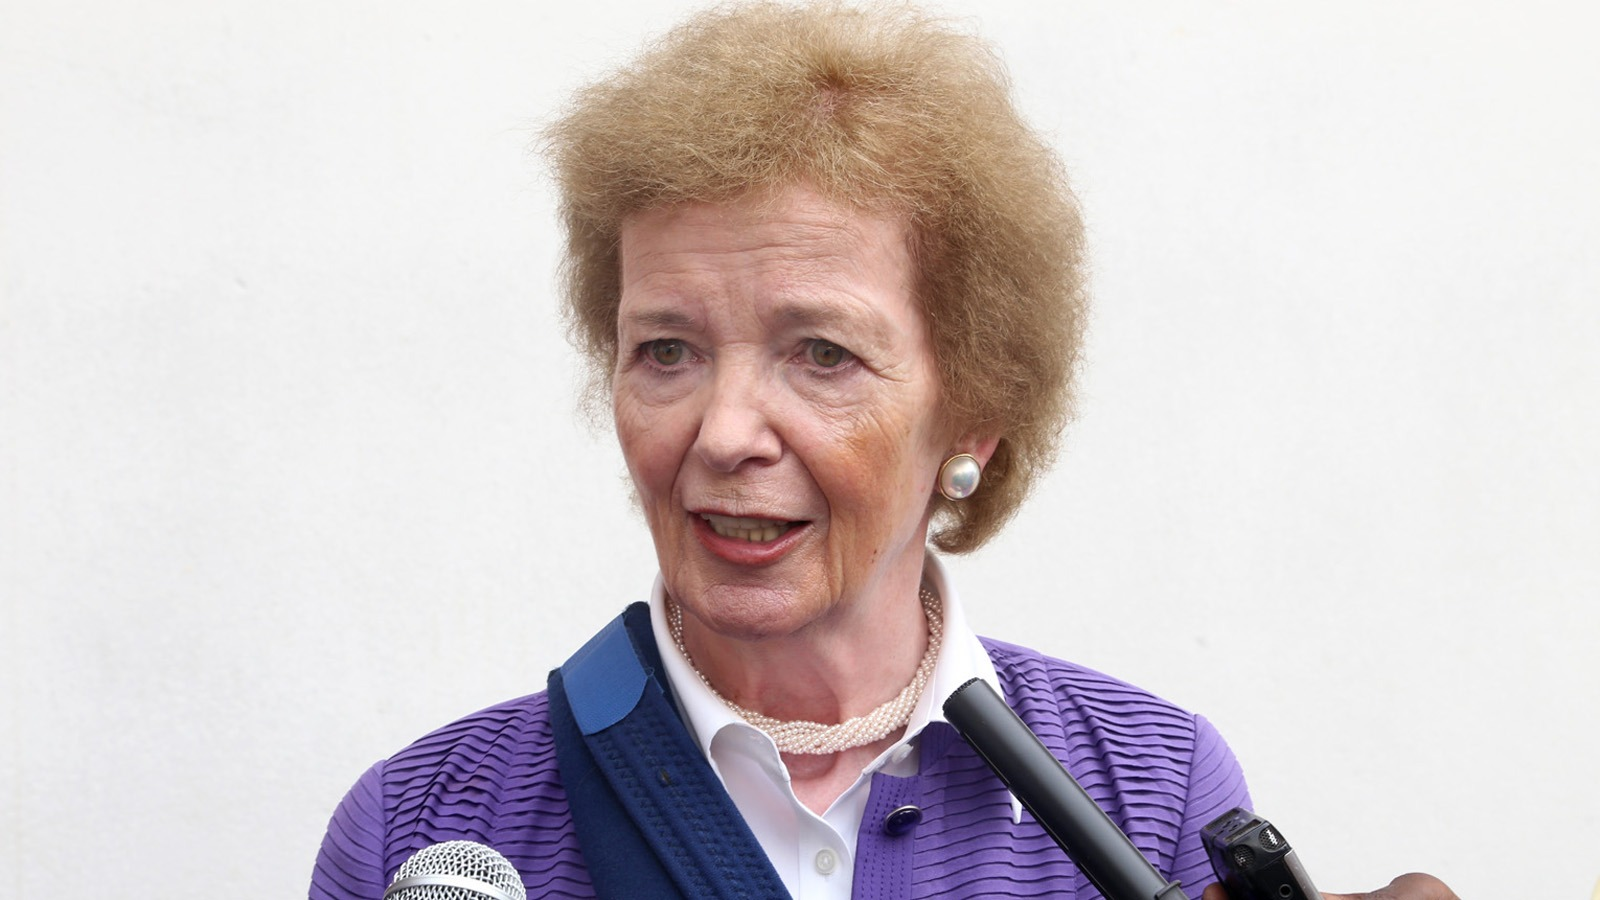 Mary Robinson, the Special Envoy of the UN Secretary general for the Great Lakes region arrived today May 10 in Bangui for a one day visit in Central African Republic.